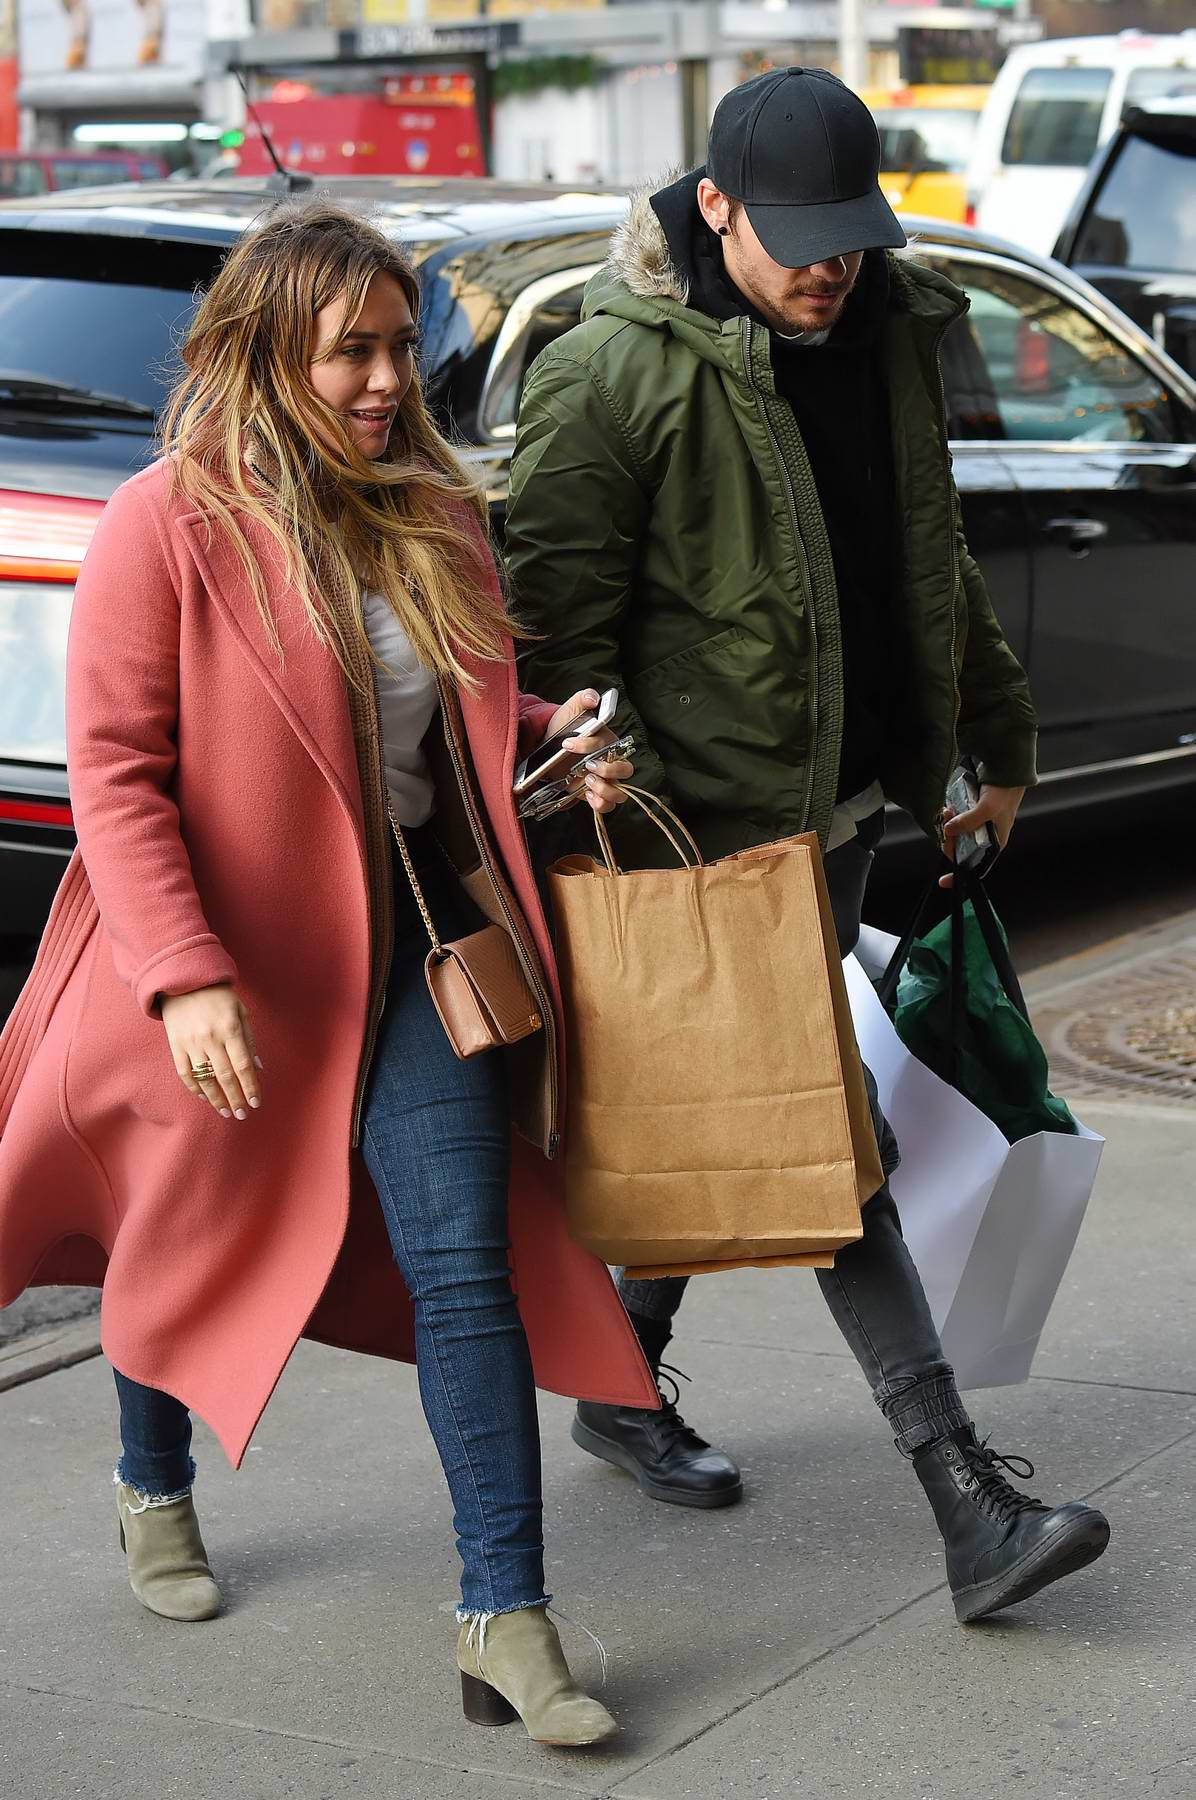 Hilary Duff and boyfriend Matthew Koma spotted out while shopping in Manhattan, New York City